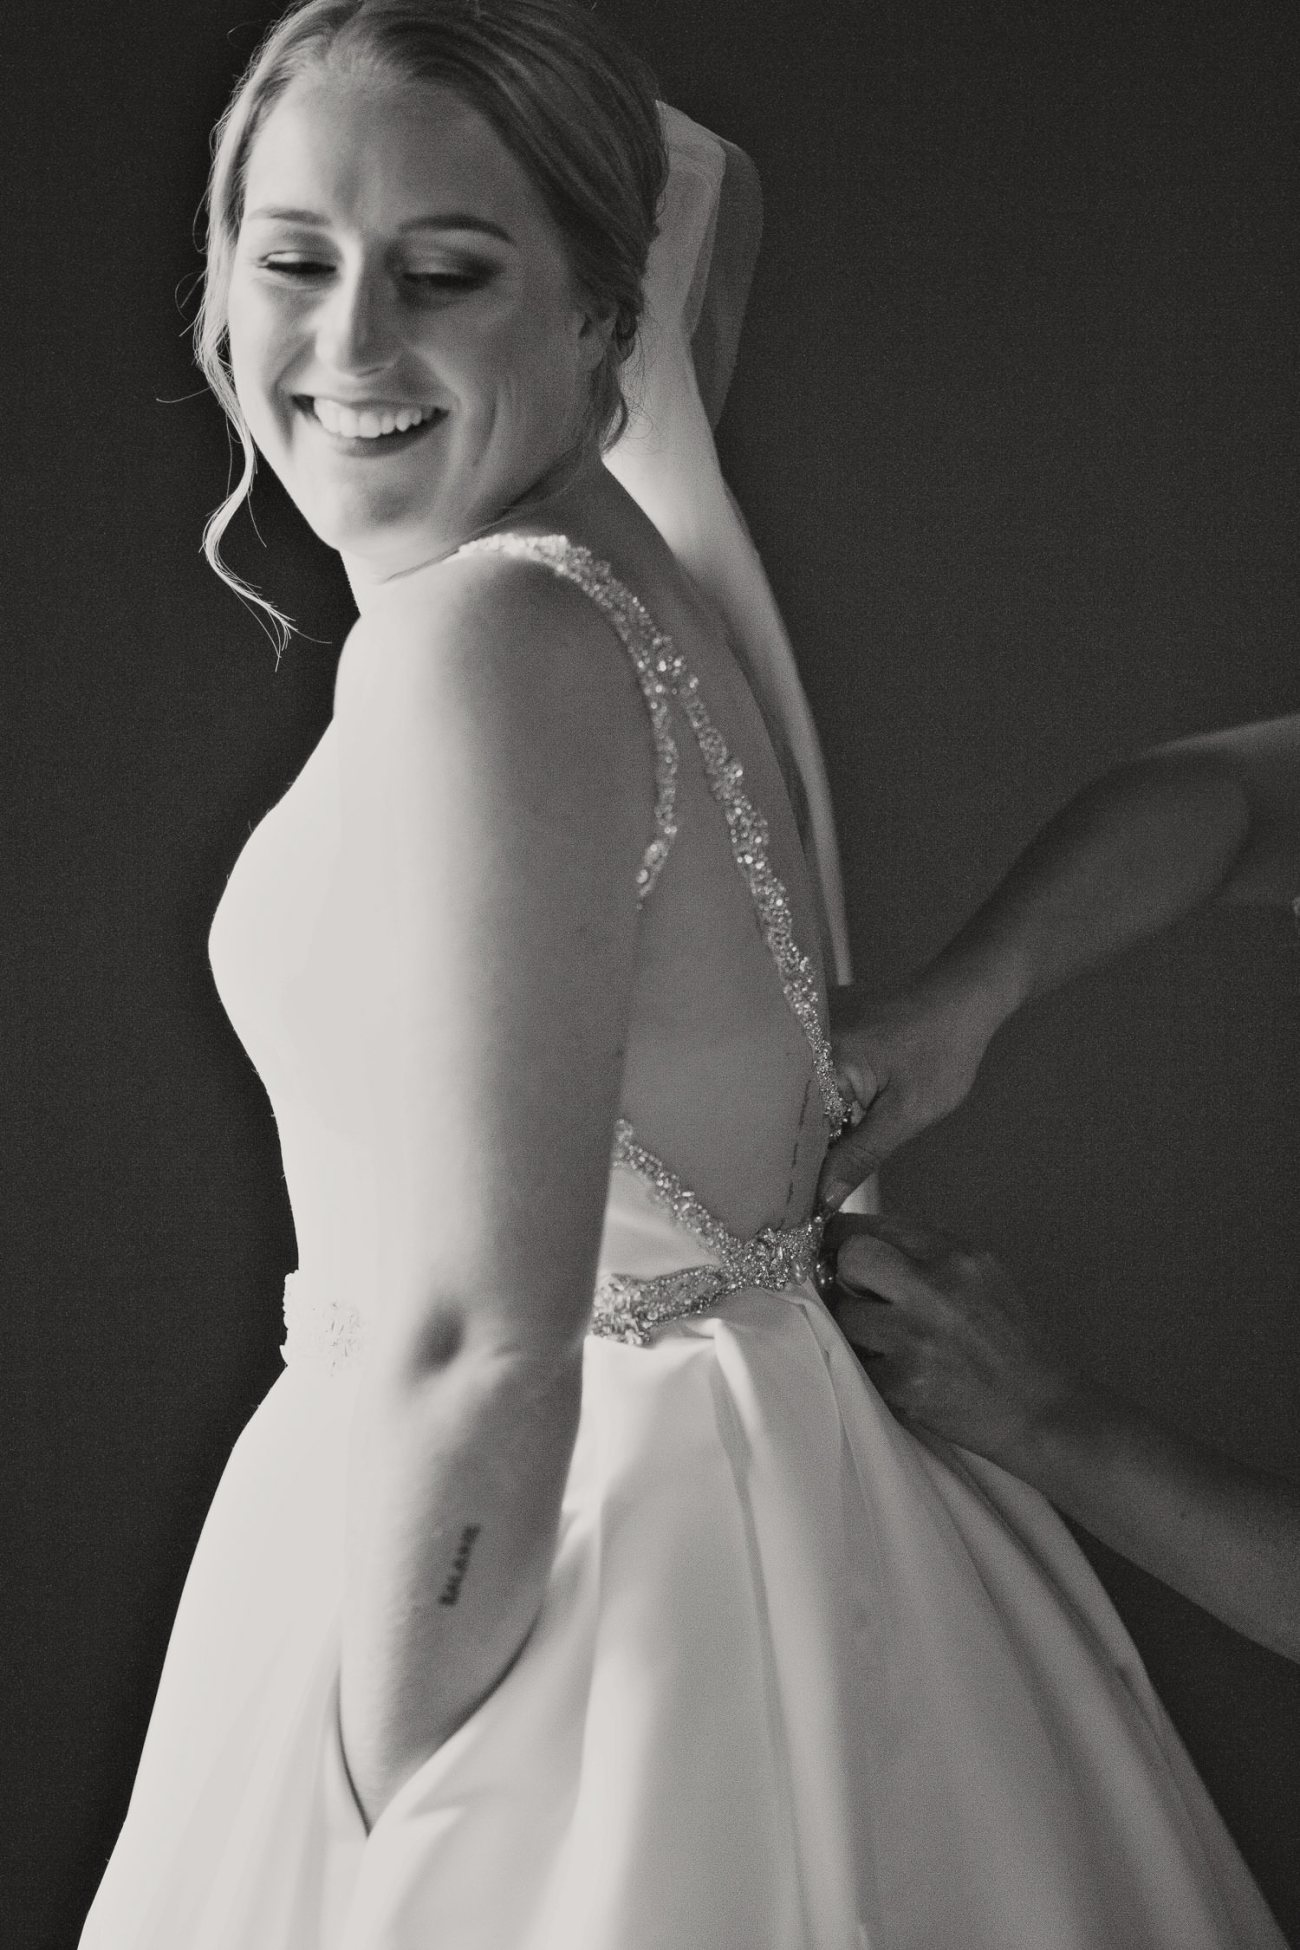 The bride gets ready for her Creekside Villa wedding captured by Tara Whittaker Photography